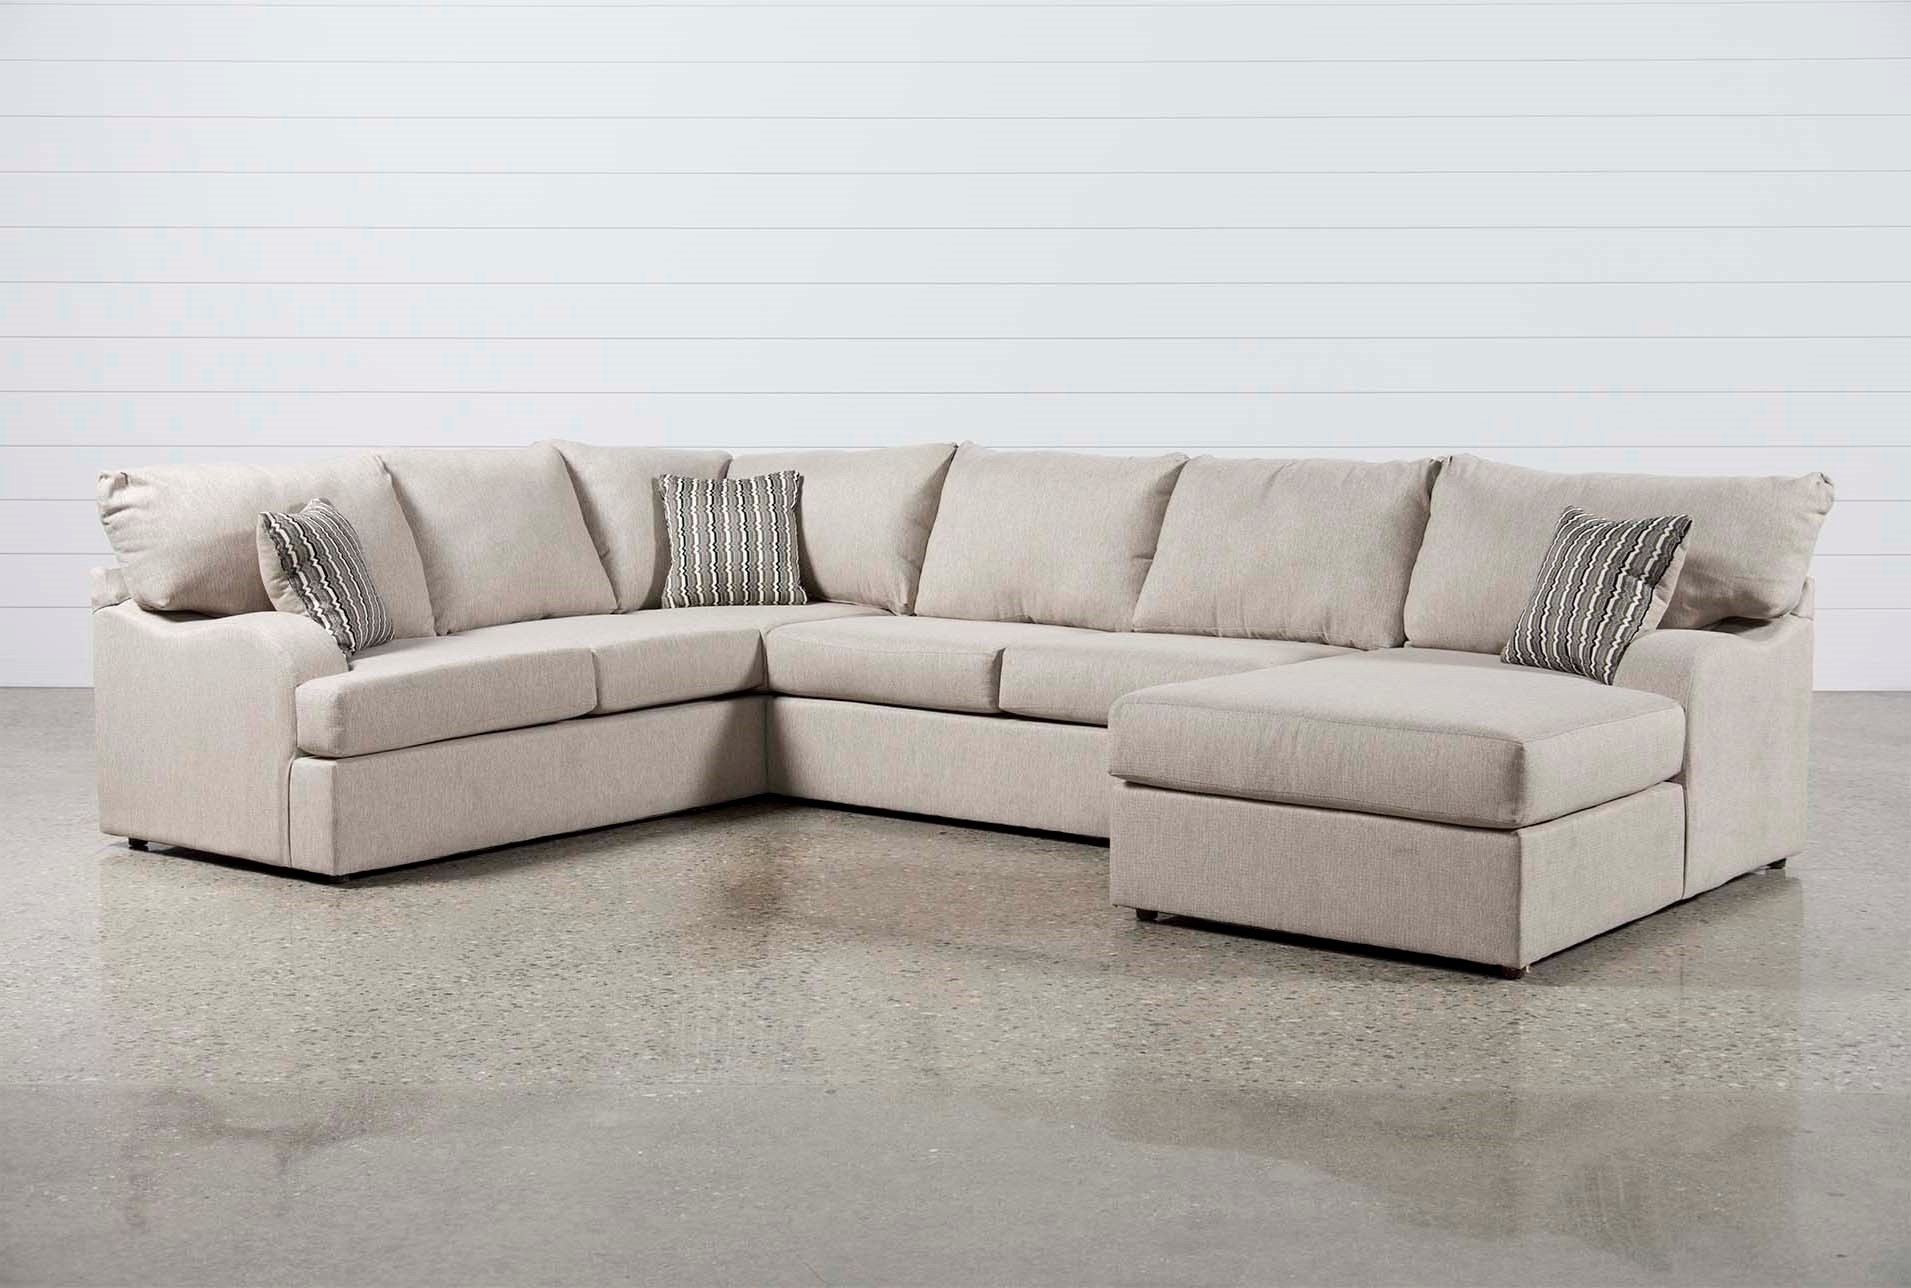 Raf Sectional Turdur 3 Piece W Loveseat Living Spaces 223462 0 Jpg with regard to Turdur 3 Piece Sectionals With Laf Loveseat (Image 22 of 30)